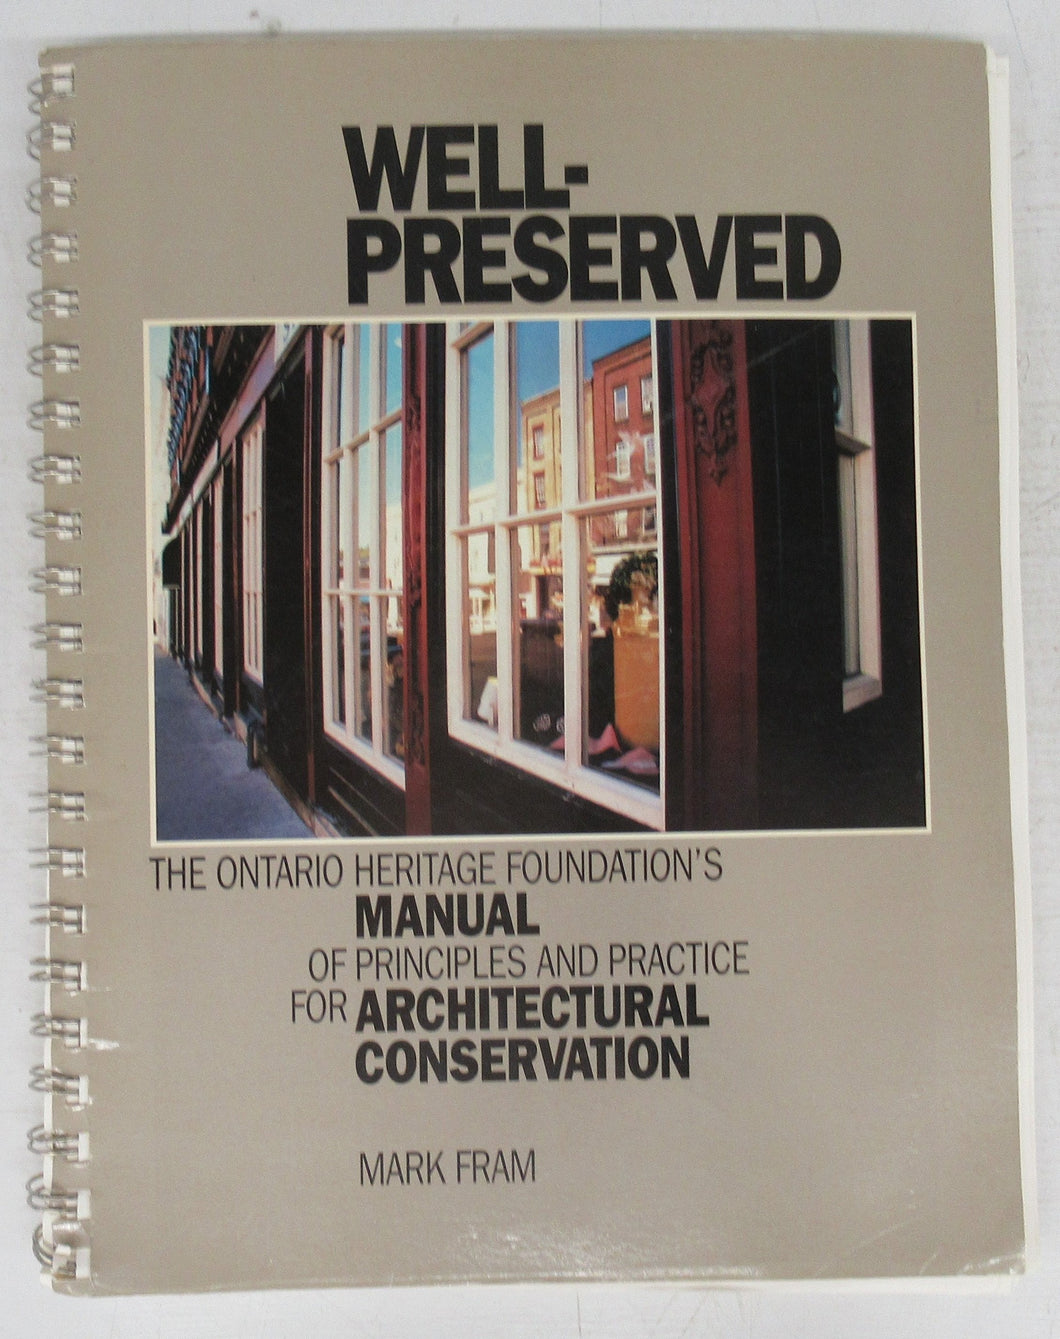 Well-preserved: The Ontario Heritage Foundation's Manual of Principles and Practice for Architectural Conservation